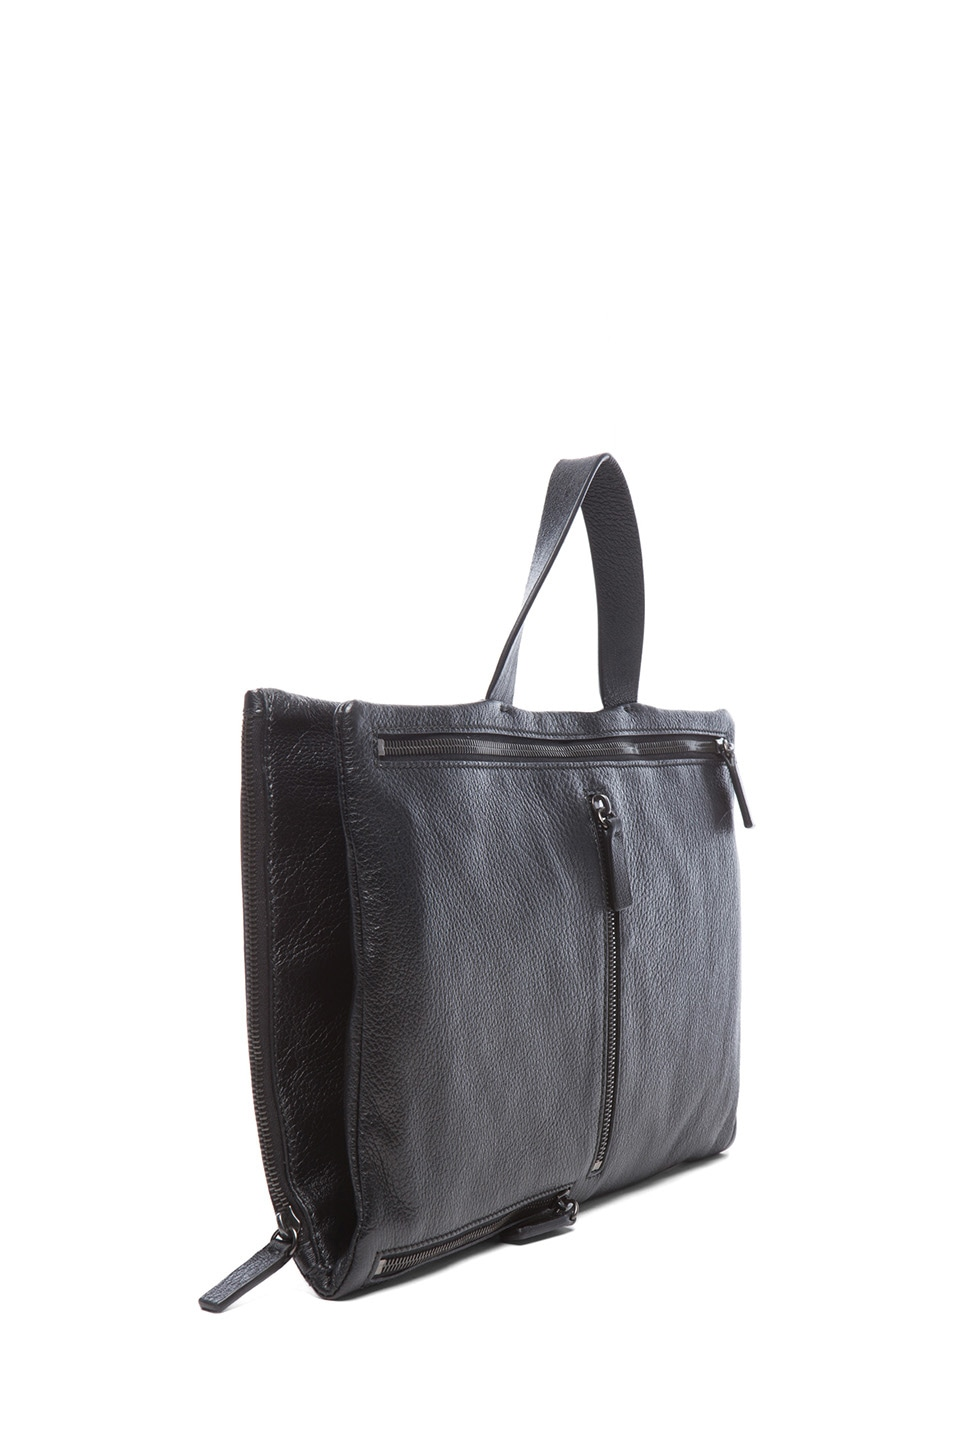 Online Cheap Jil Sander foldover top tote Newest Cheap Online Buy Cheap Find Great Best Place To Buy Online High Quality Cheap Price aMBKX